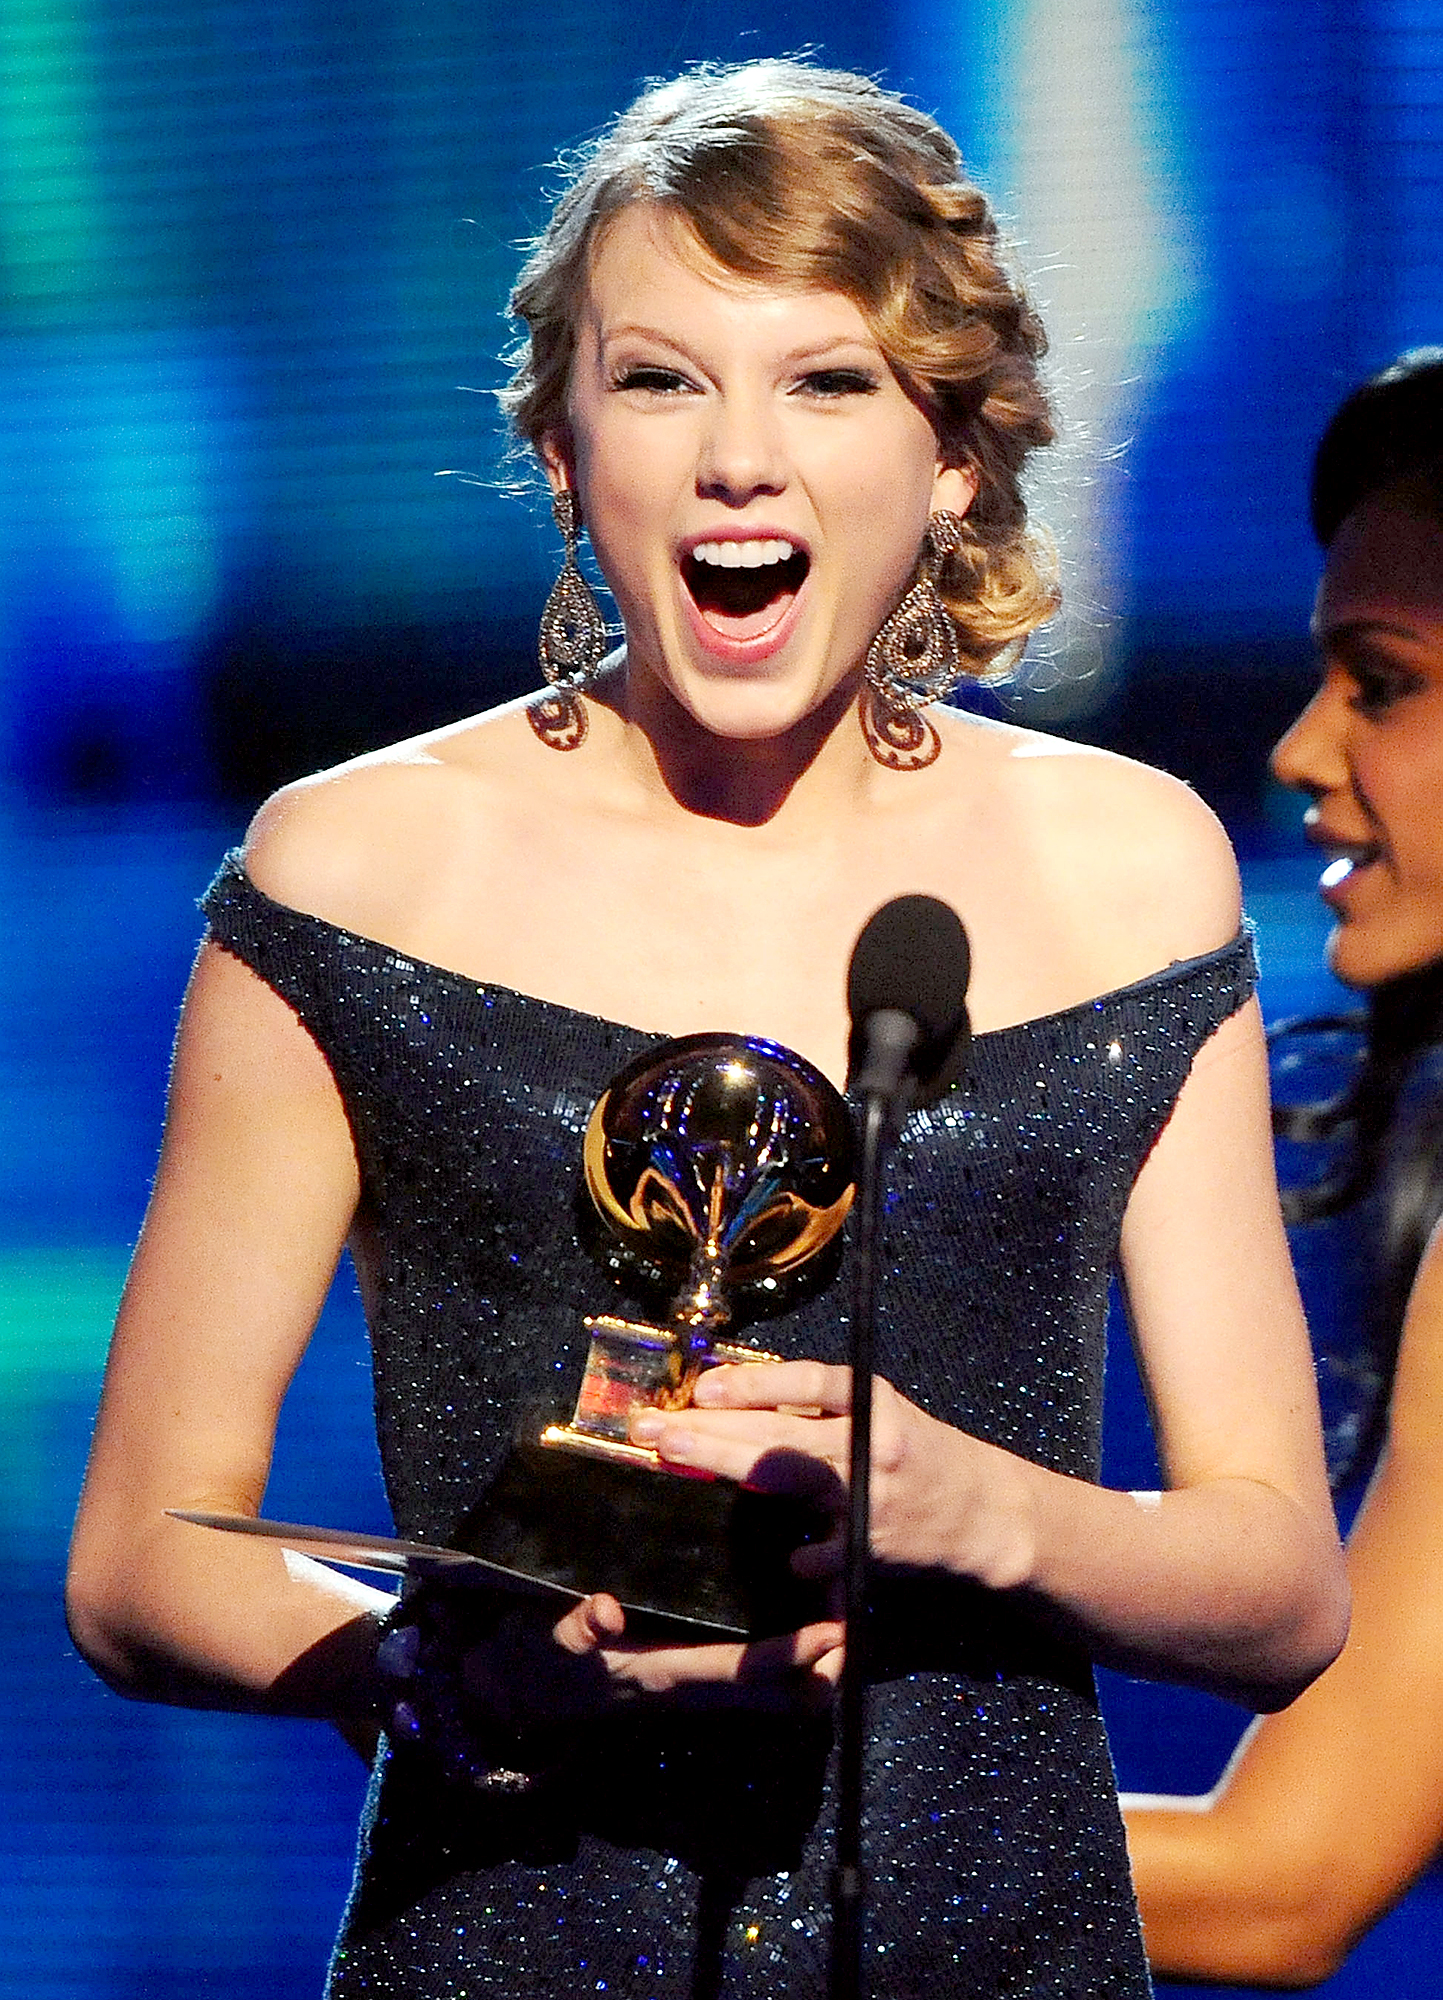 taylor-swift-grammy-awards - Taylor Swift was 20 when her album Fearless won the Album of the Year honor in 2010.